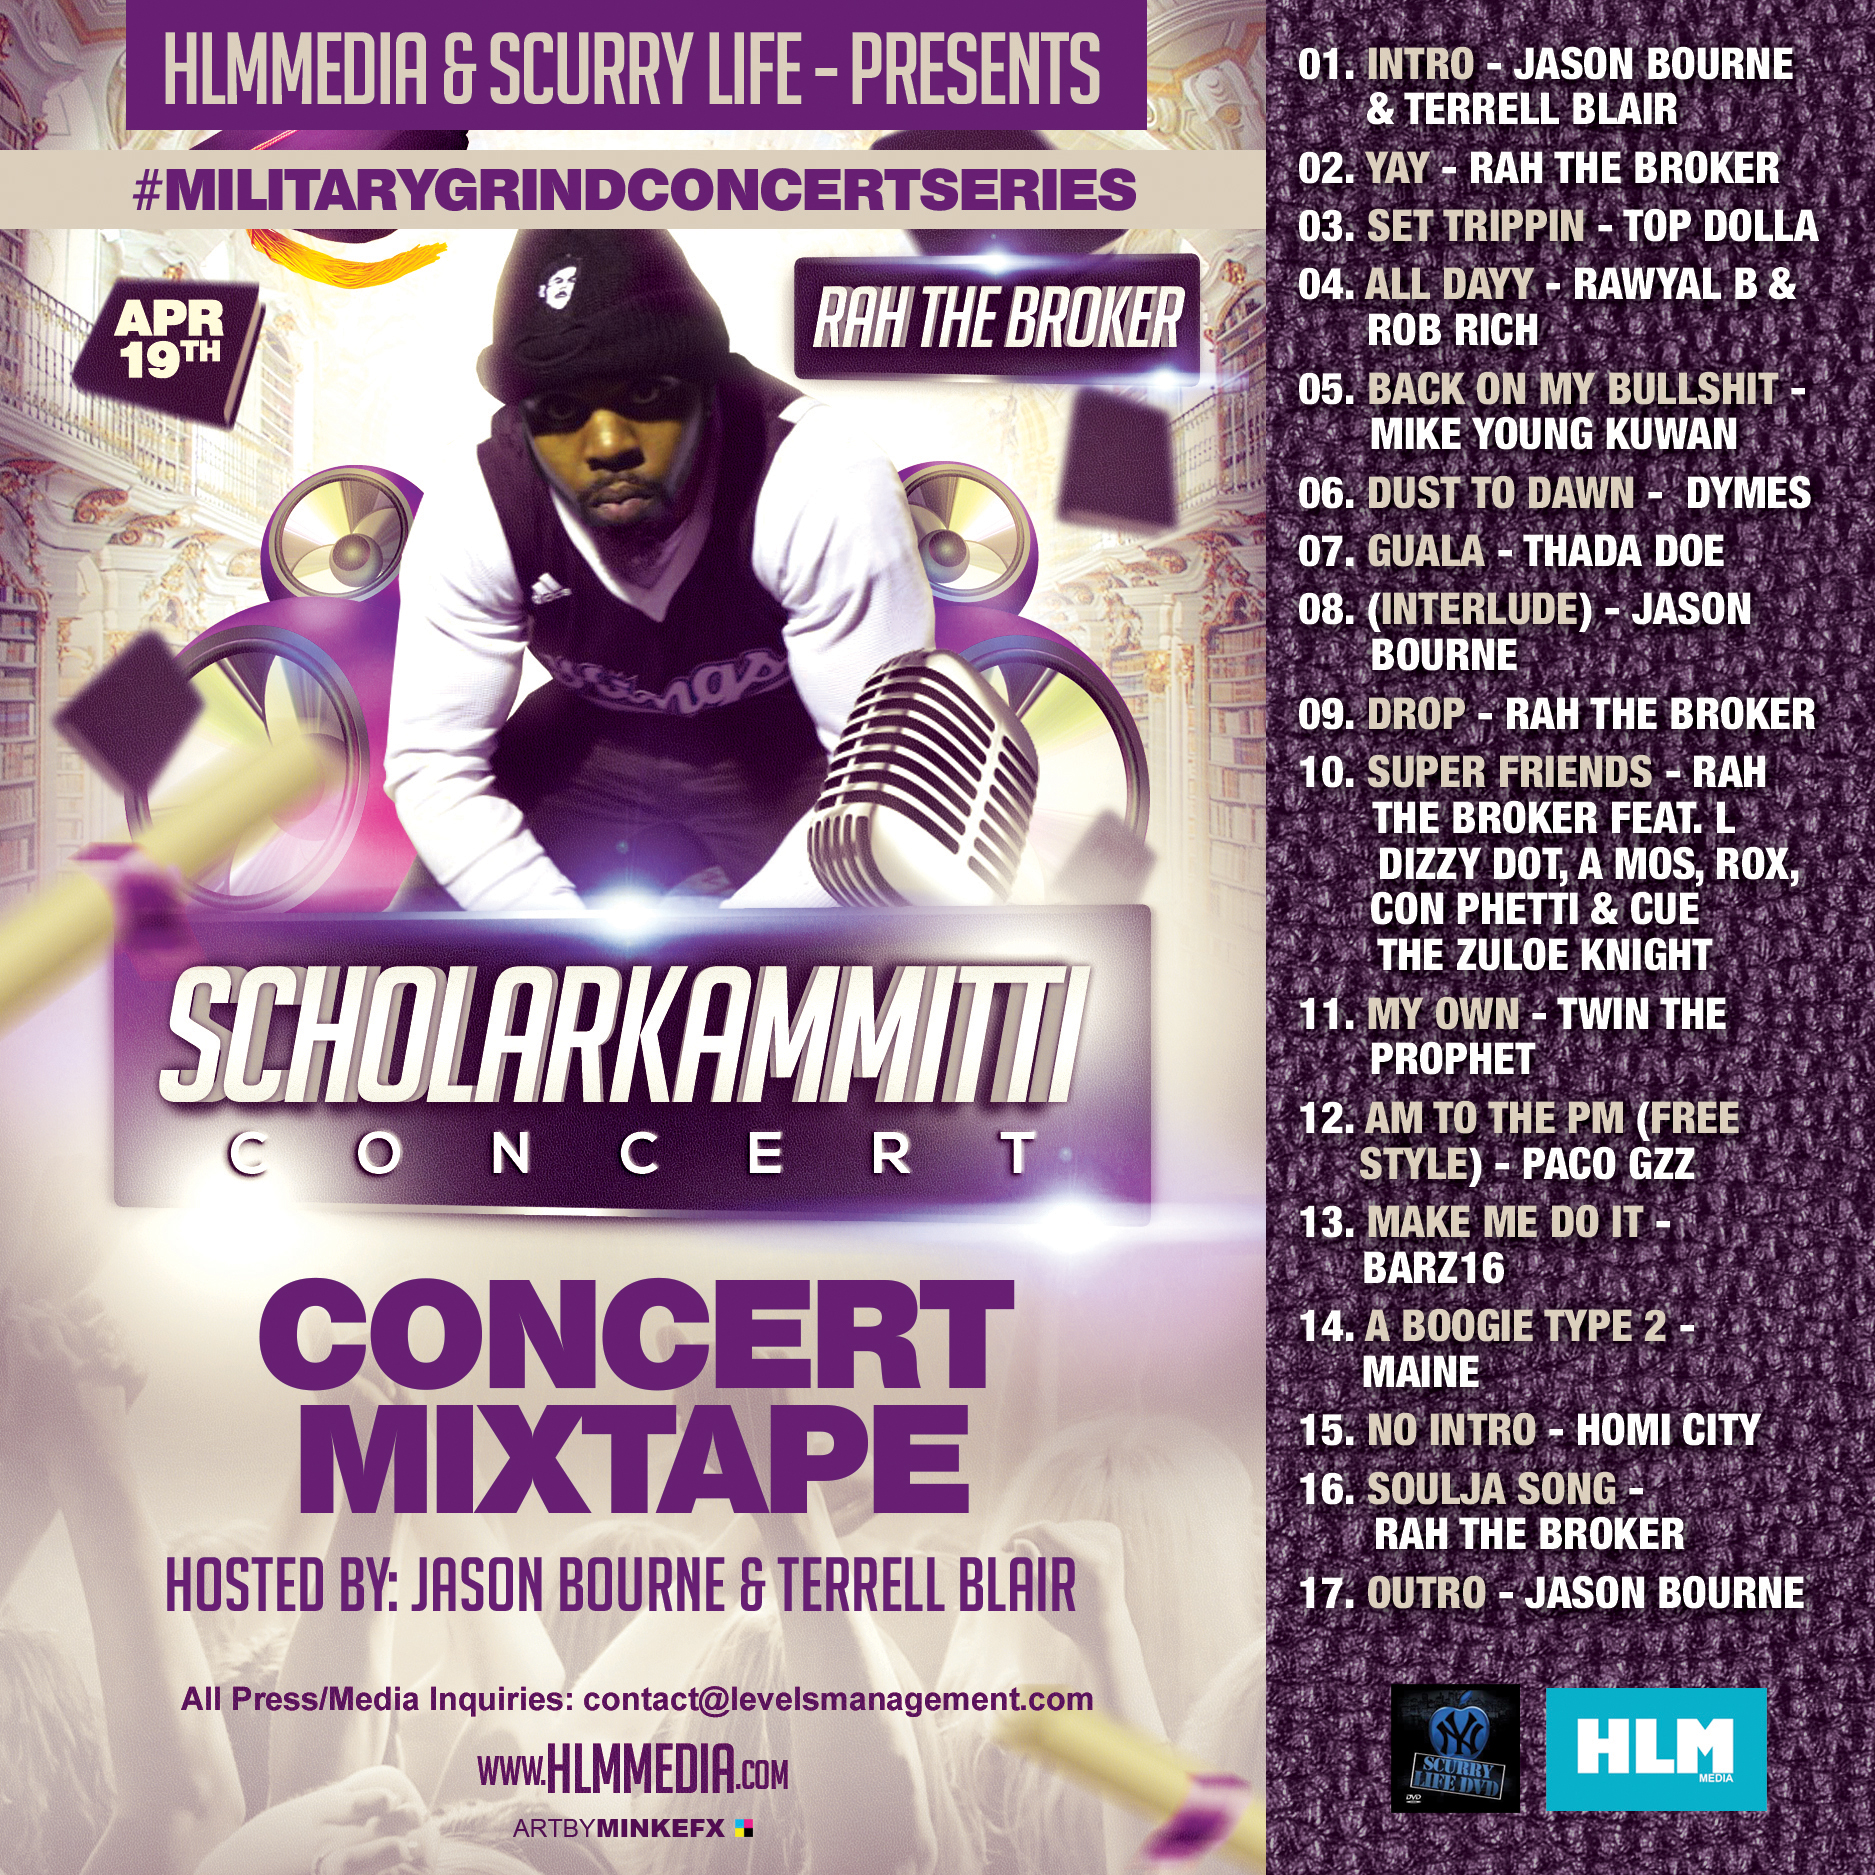 Photo of HLM Media & Scurry Life Presents – Scholarkammitti Concert Mixtape